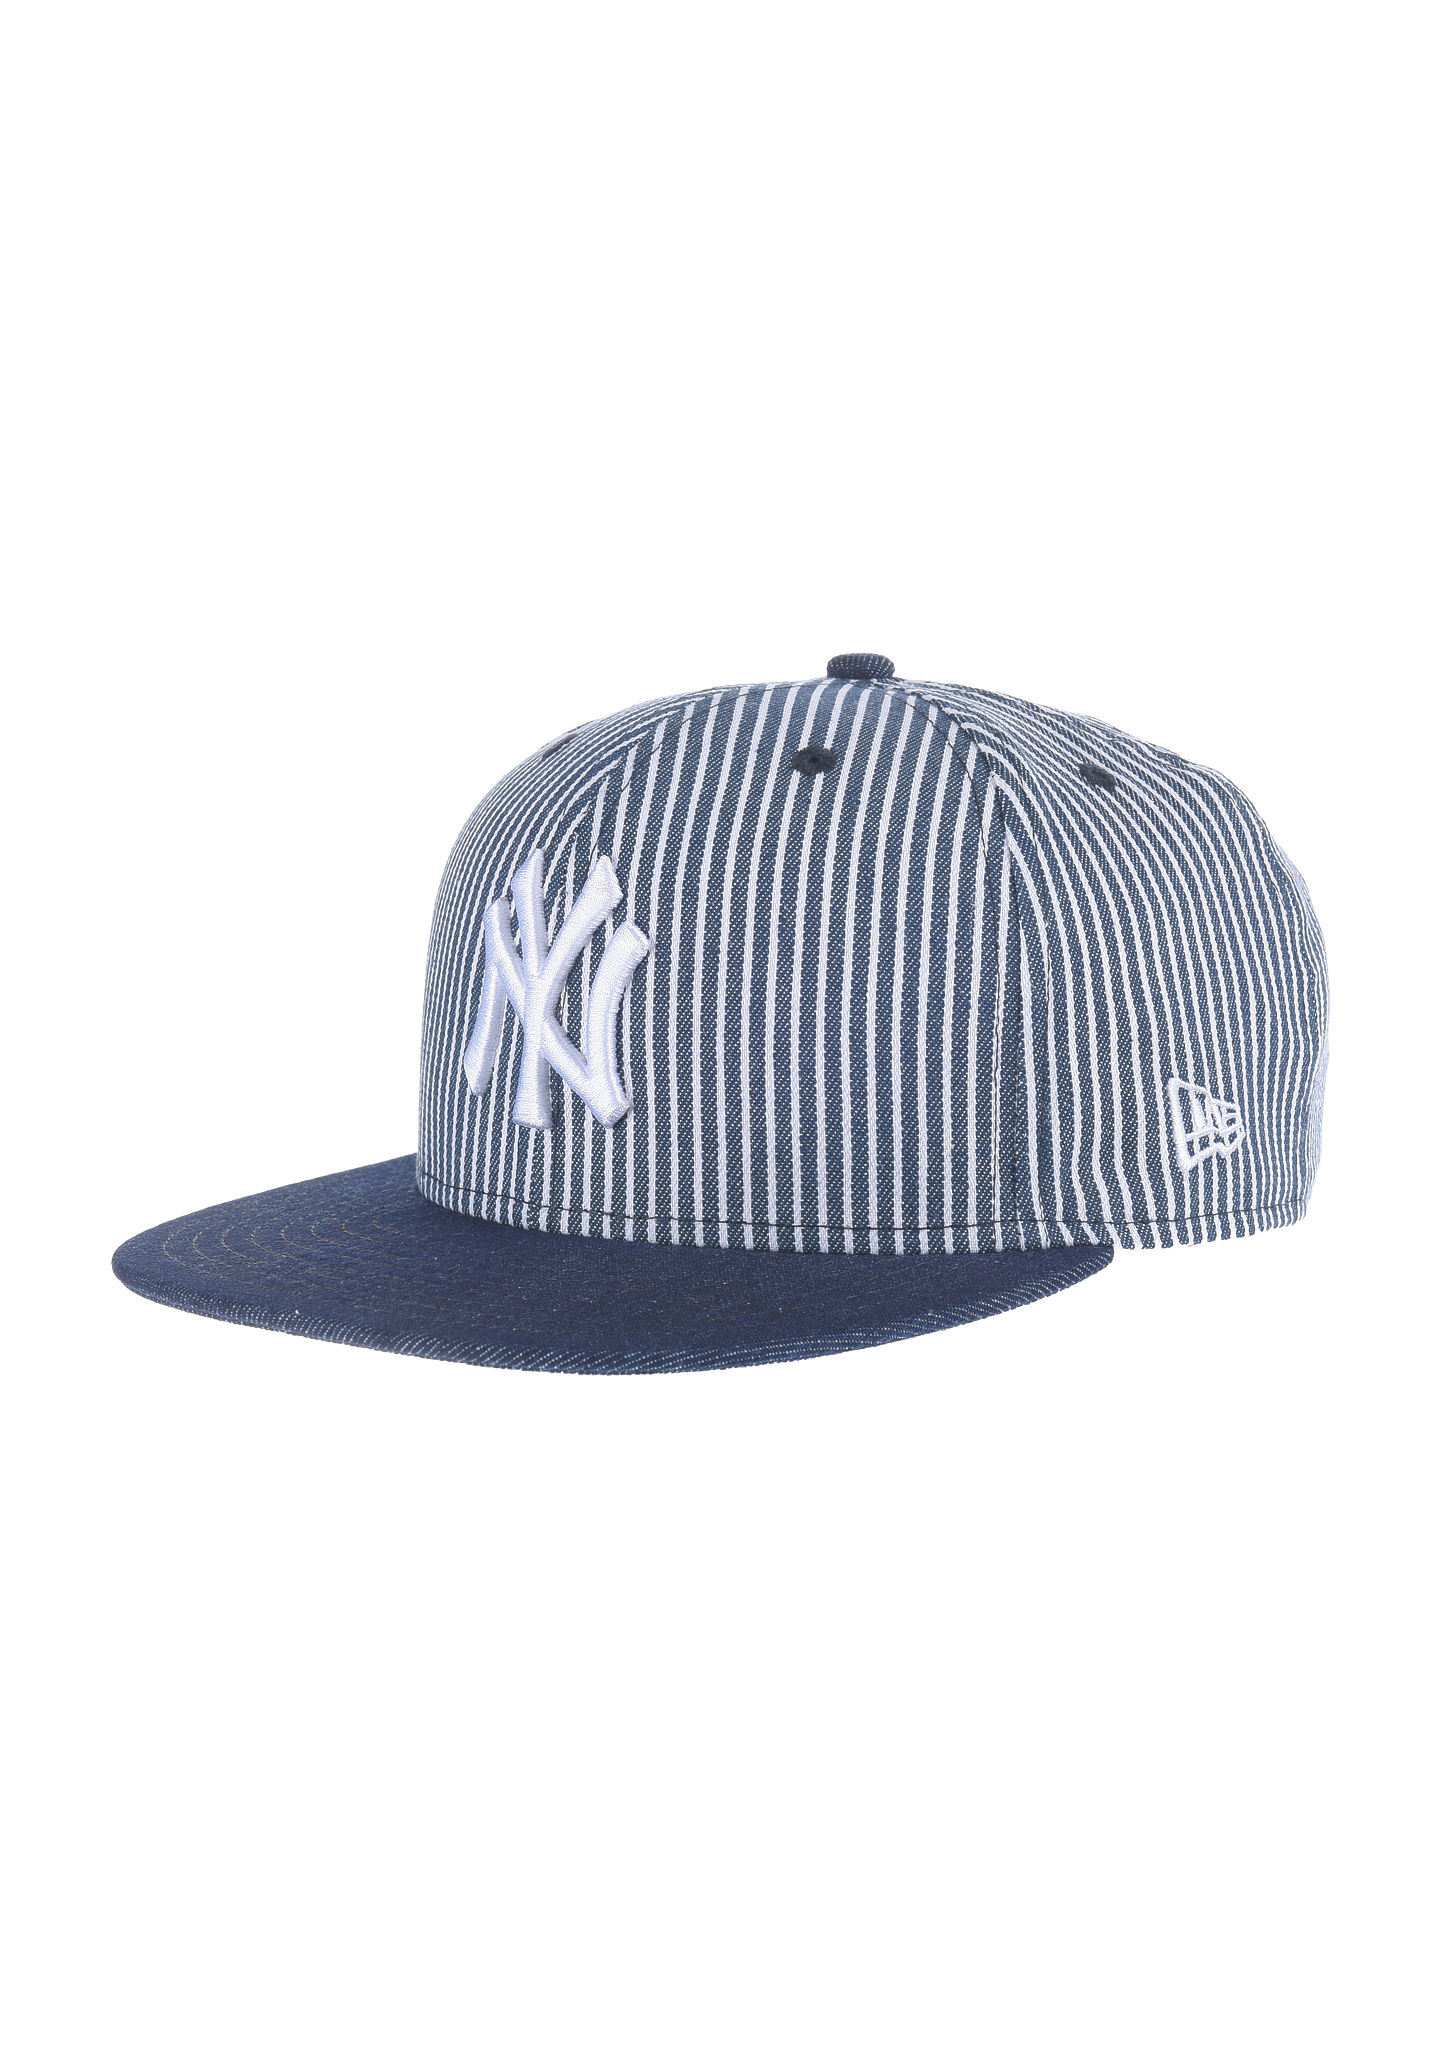 34d9fb42f1f53 NEW Era Pinstripe Strap New York Yankees - Snapback Cap - Blue - Planet  Sports